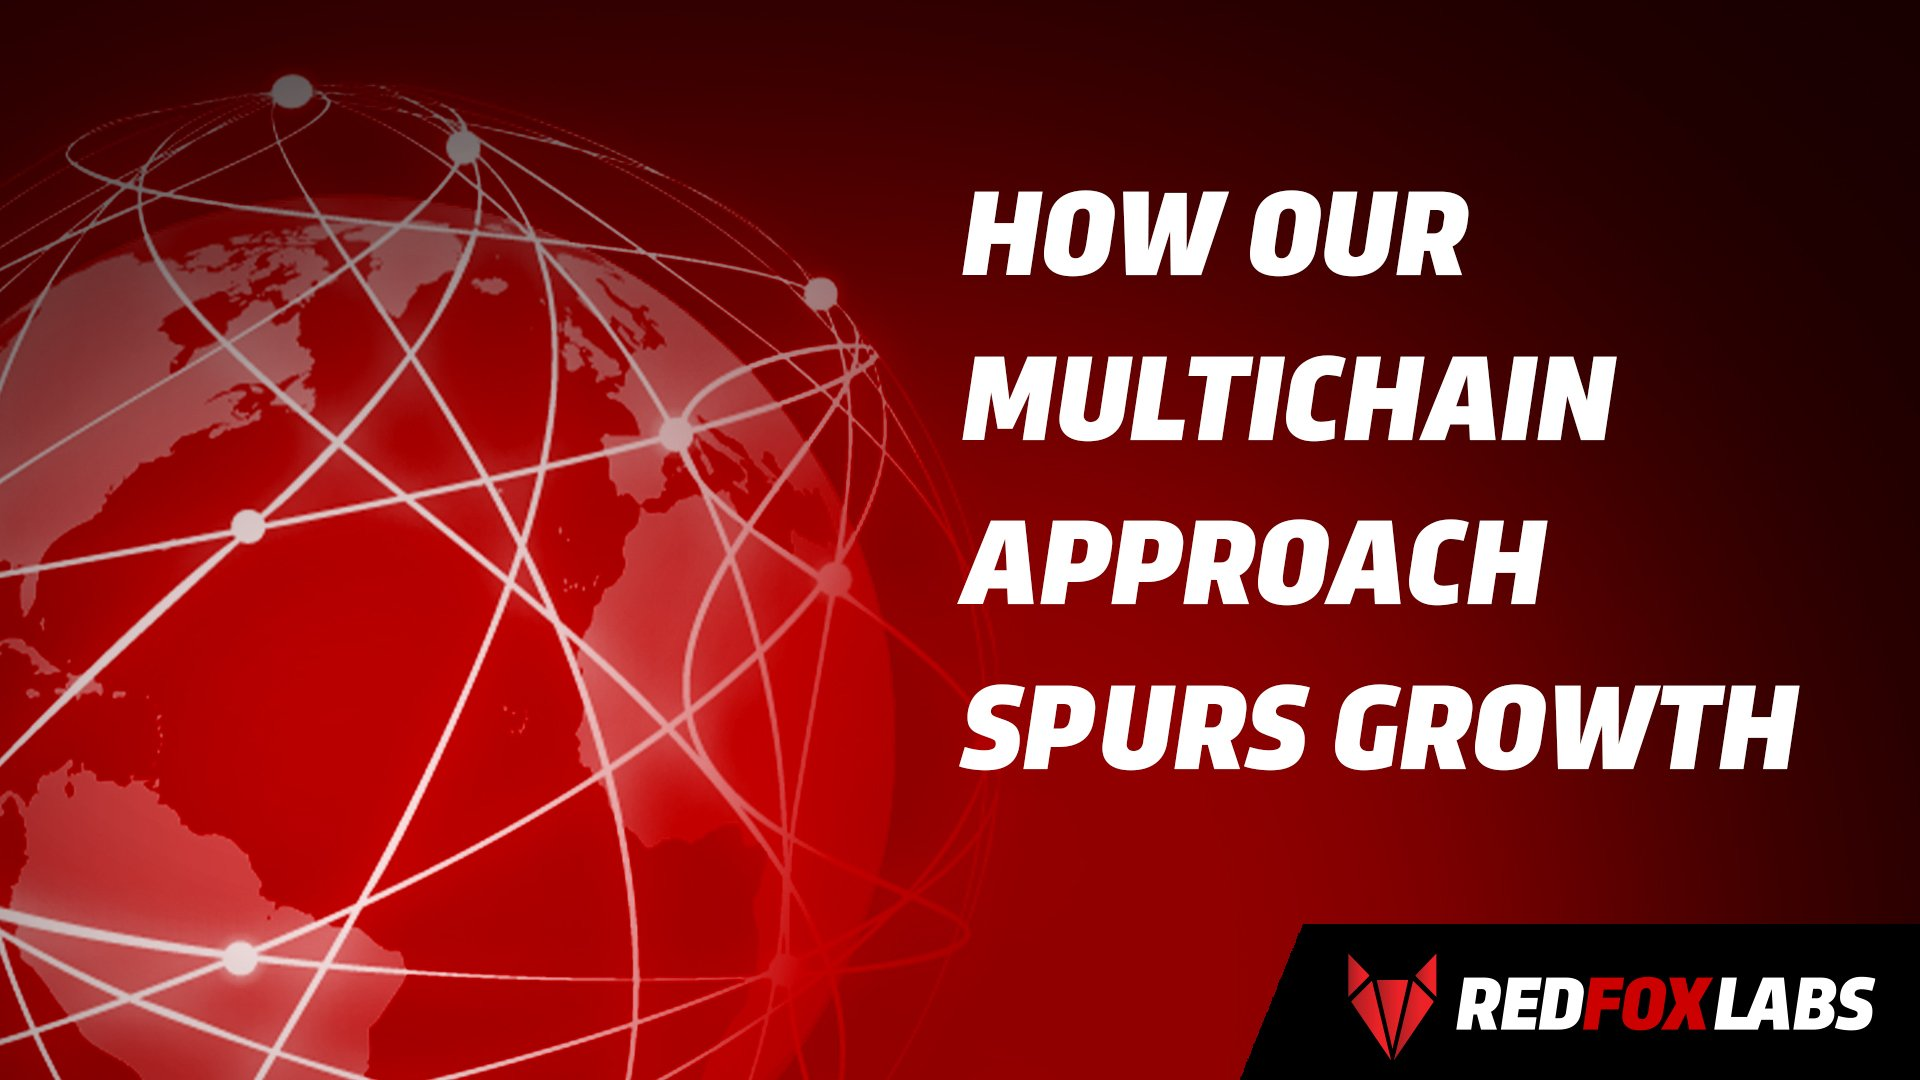 How Our Multichain Approach Spurs Growth